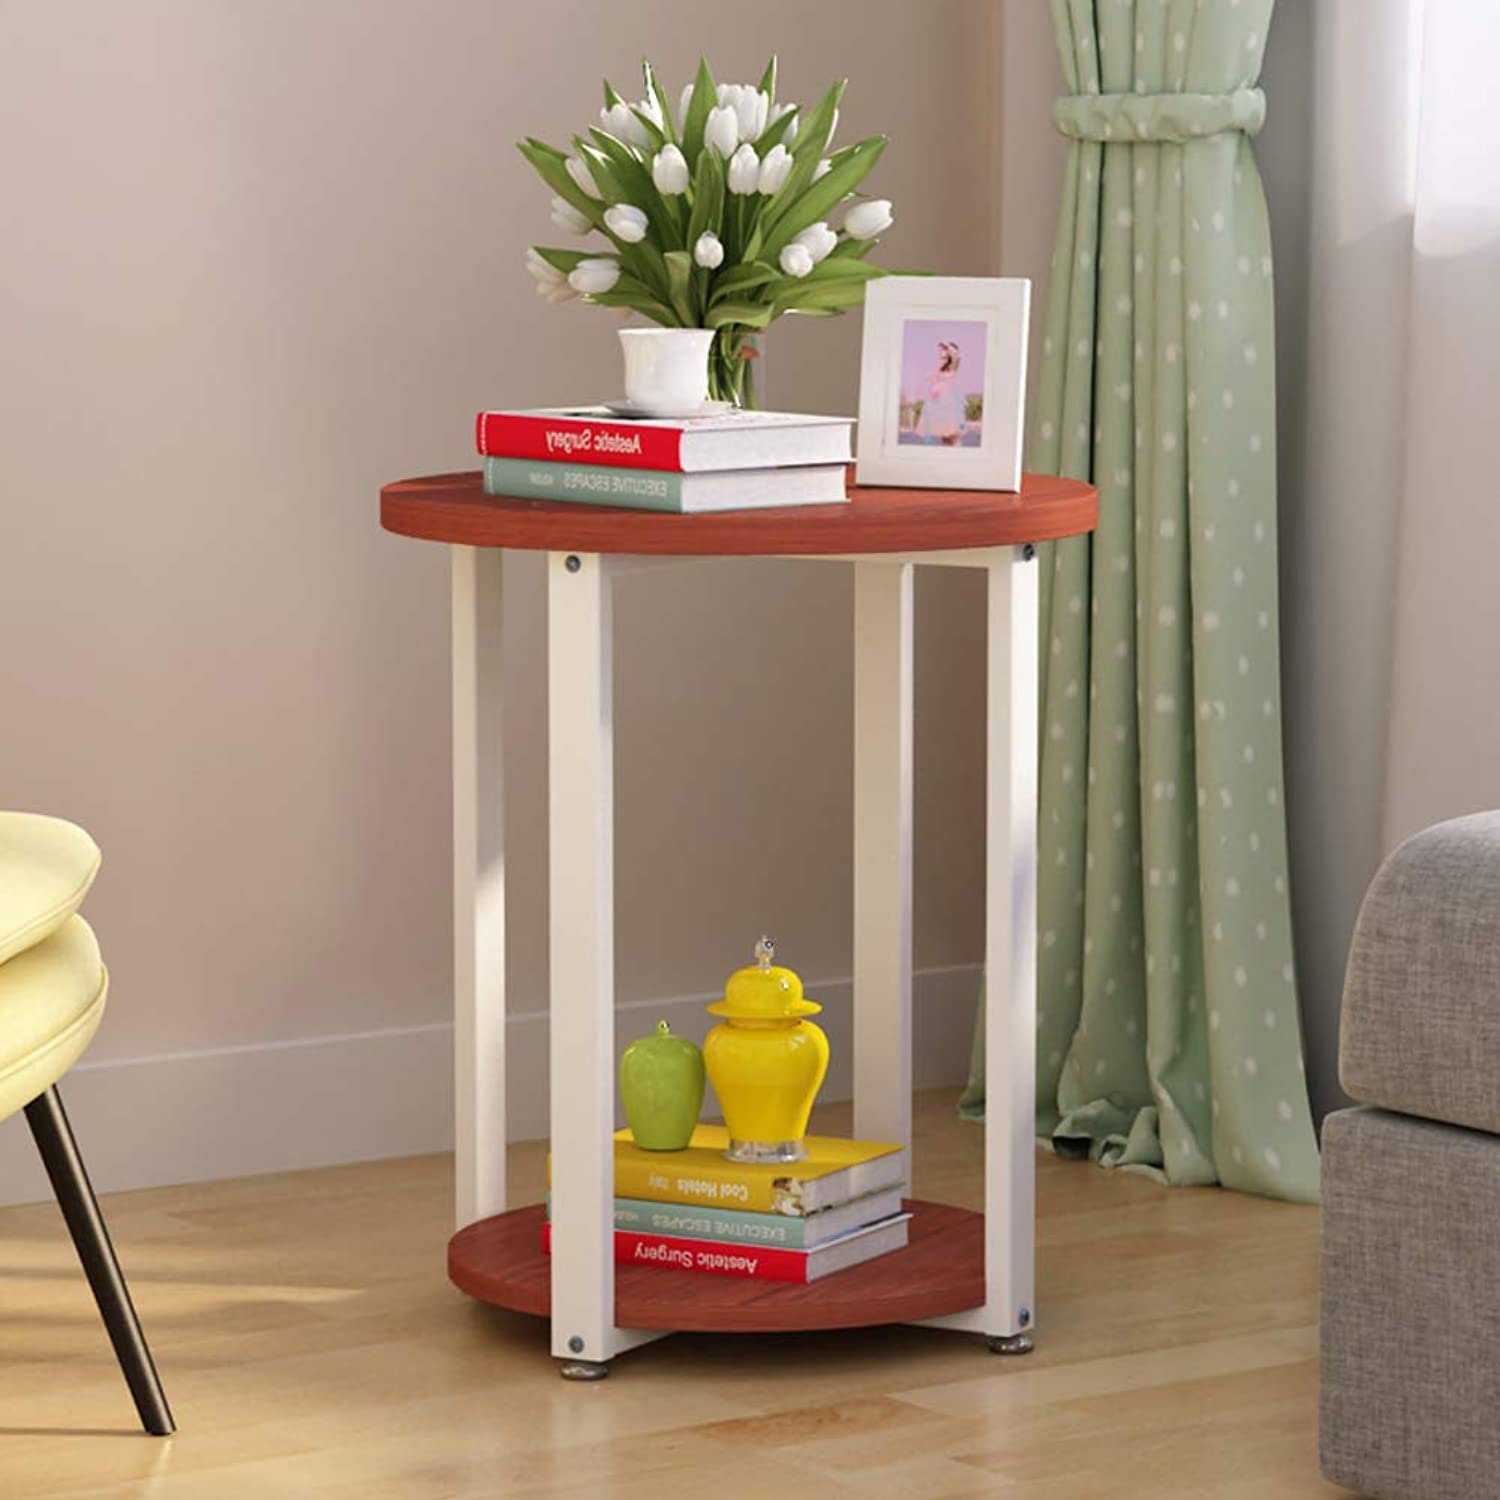 Round end Table,MDF Side Table Bedside Stand Coffee Table for Office Home Living Room-E 40x50cm(16x20inch)